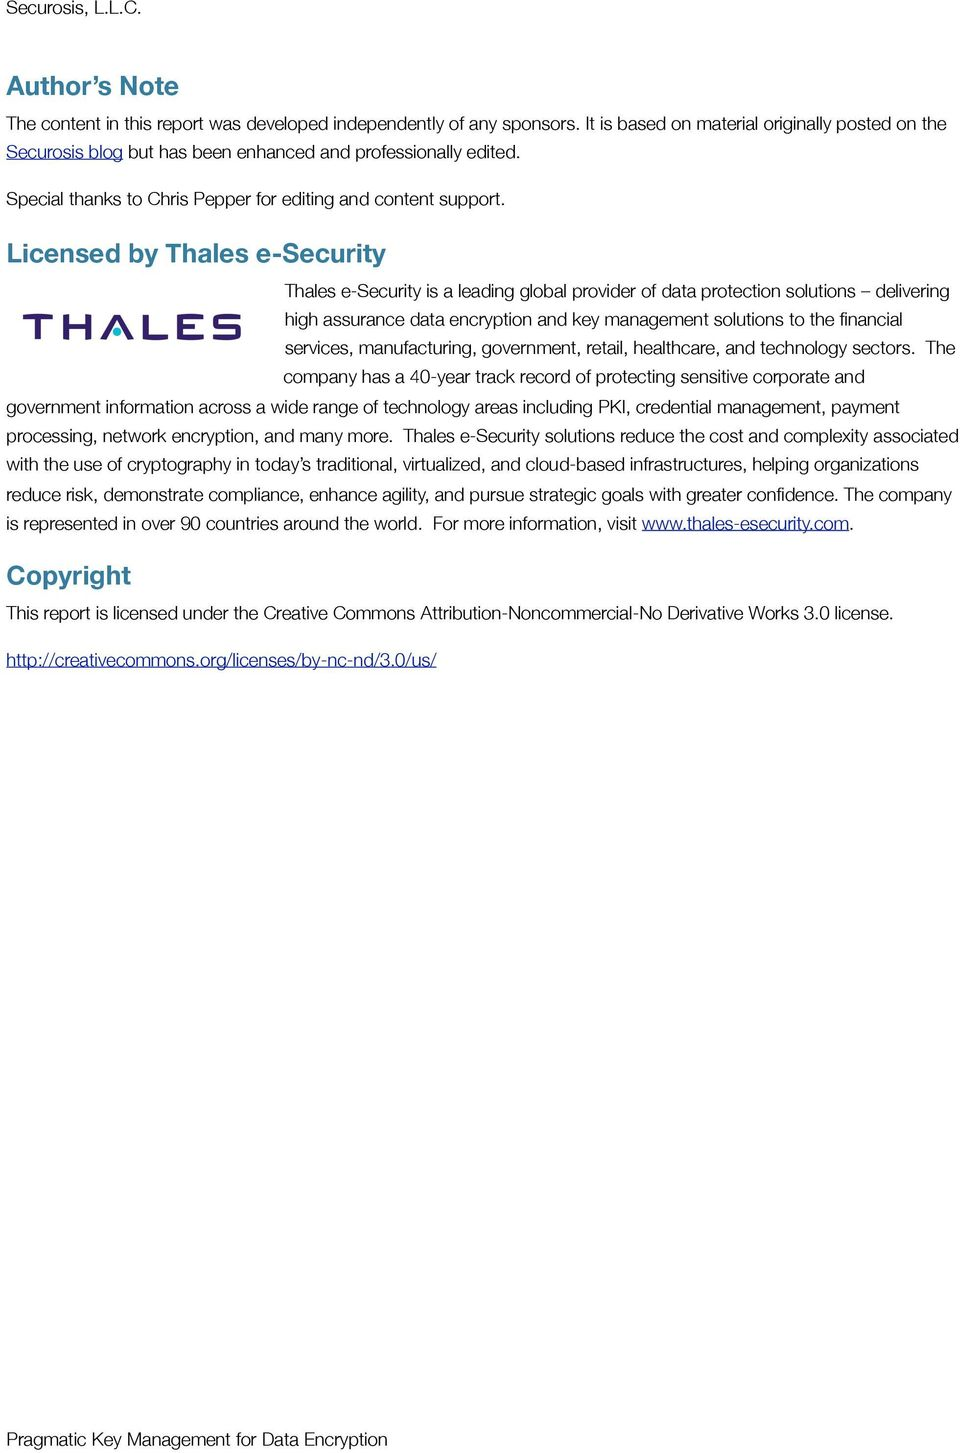 Licensed by Thales e-security Thales e-security is a leading global provider of data protection solutions delivering high assurance data encryption and key management solutions to the financial